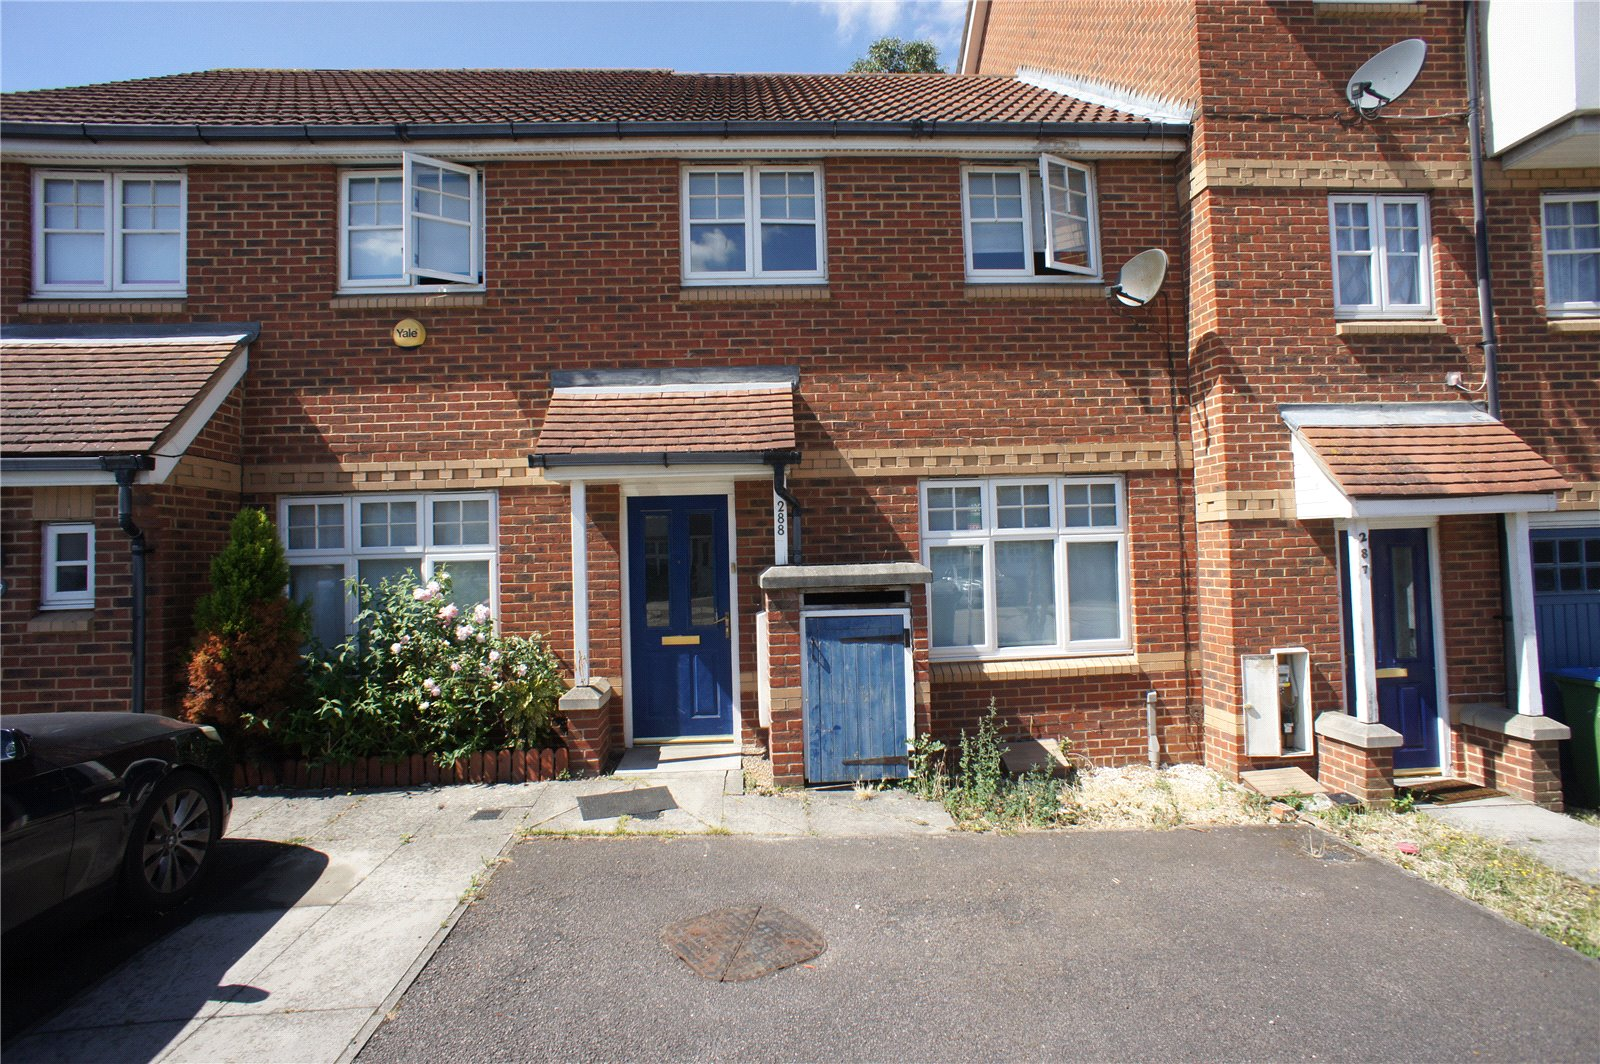 Greenhaven Drive, Thamesmead, London, SE28